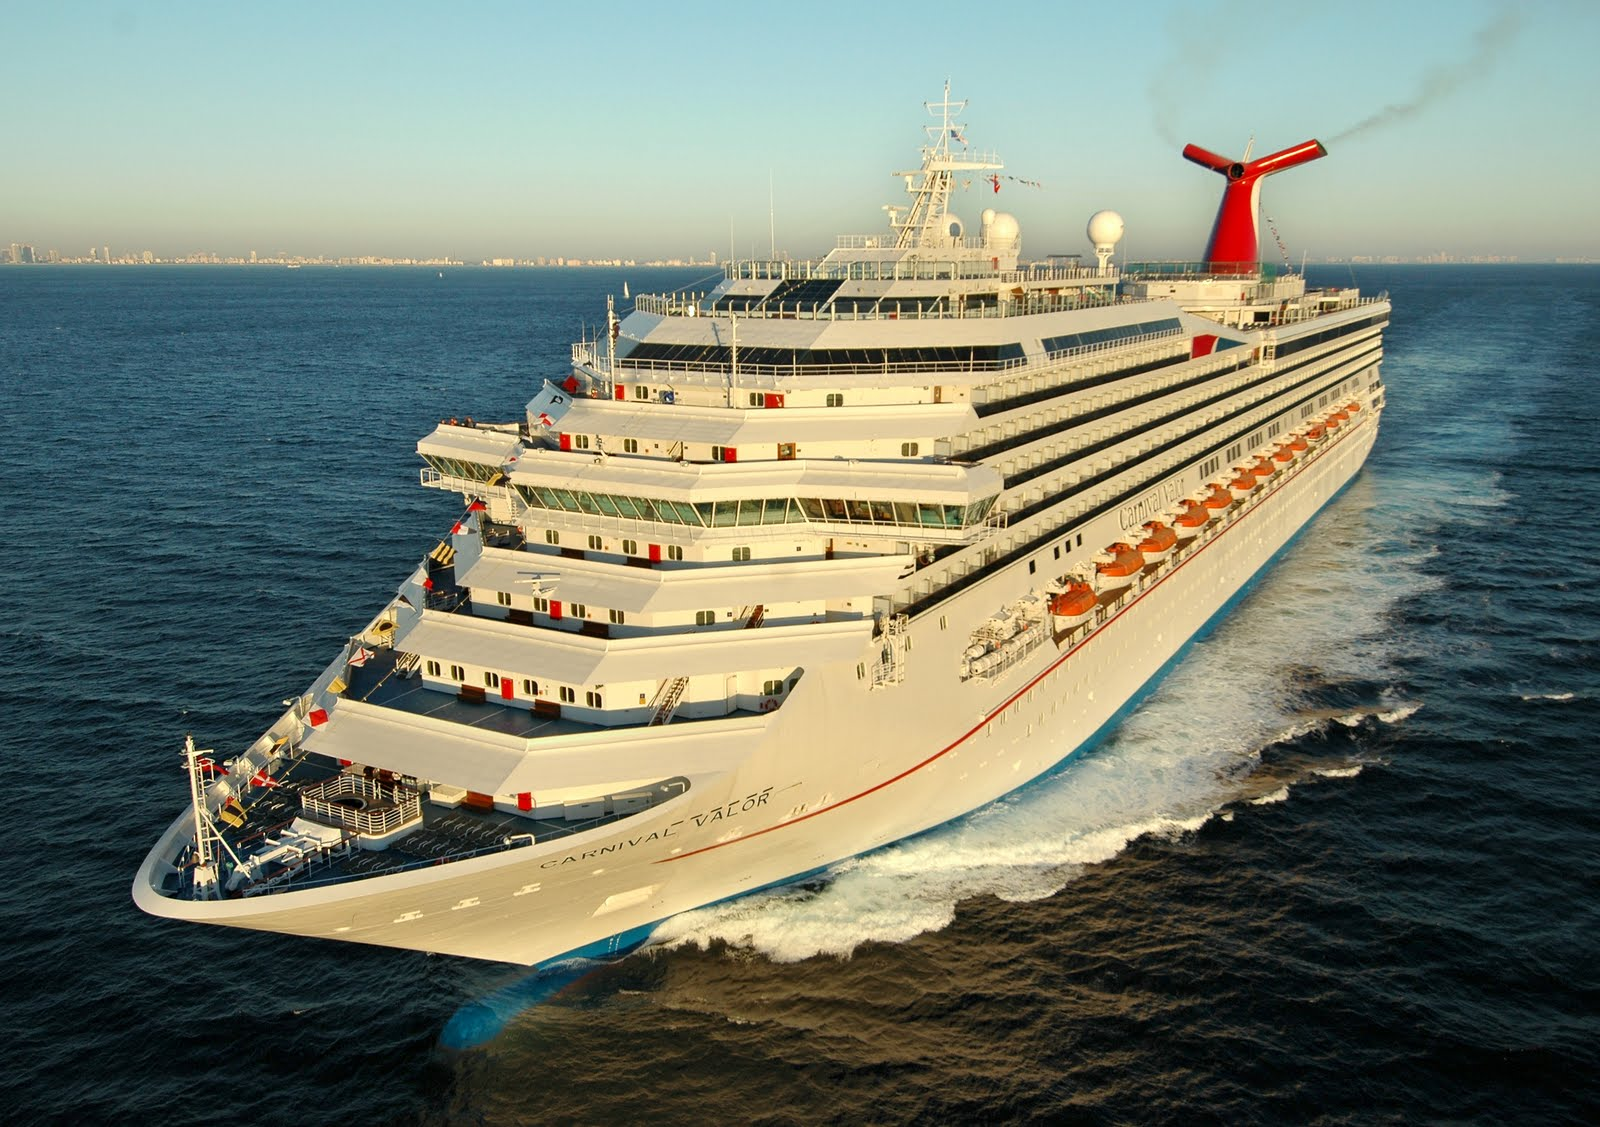 cruise wallpapers, carnival cruise wallpaper, cruise ship wallpapers-15